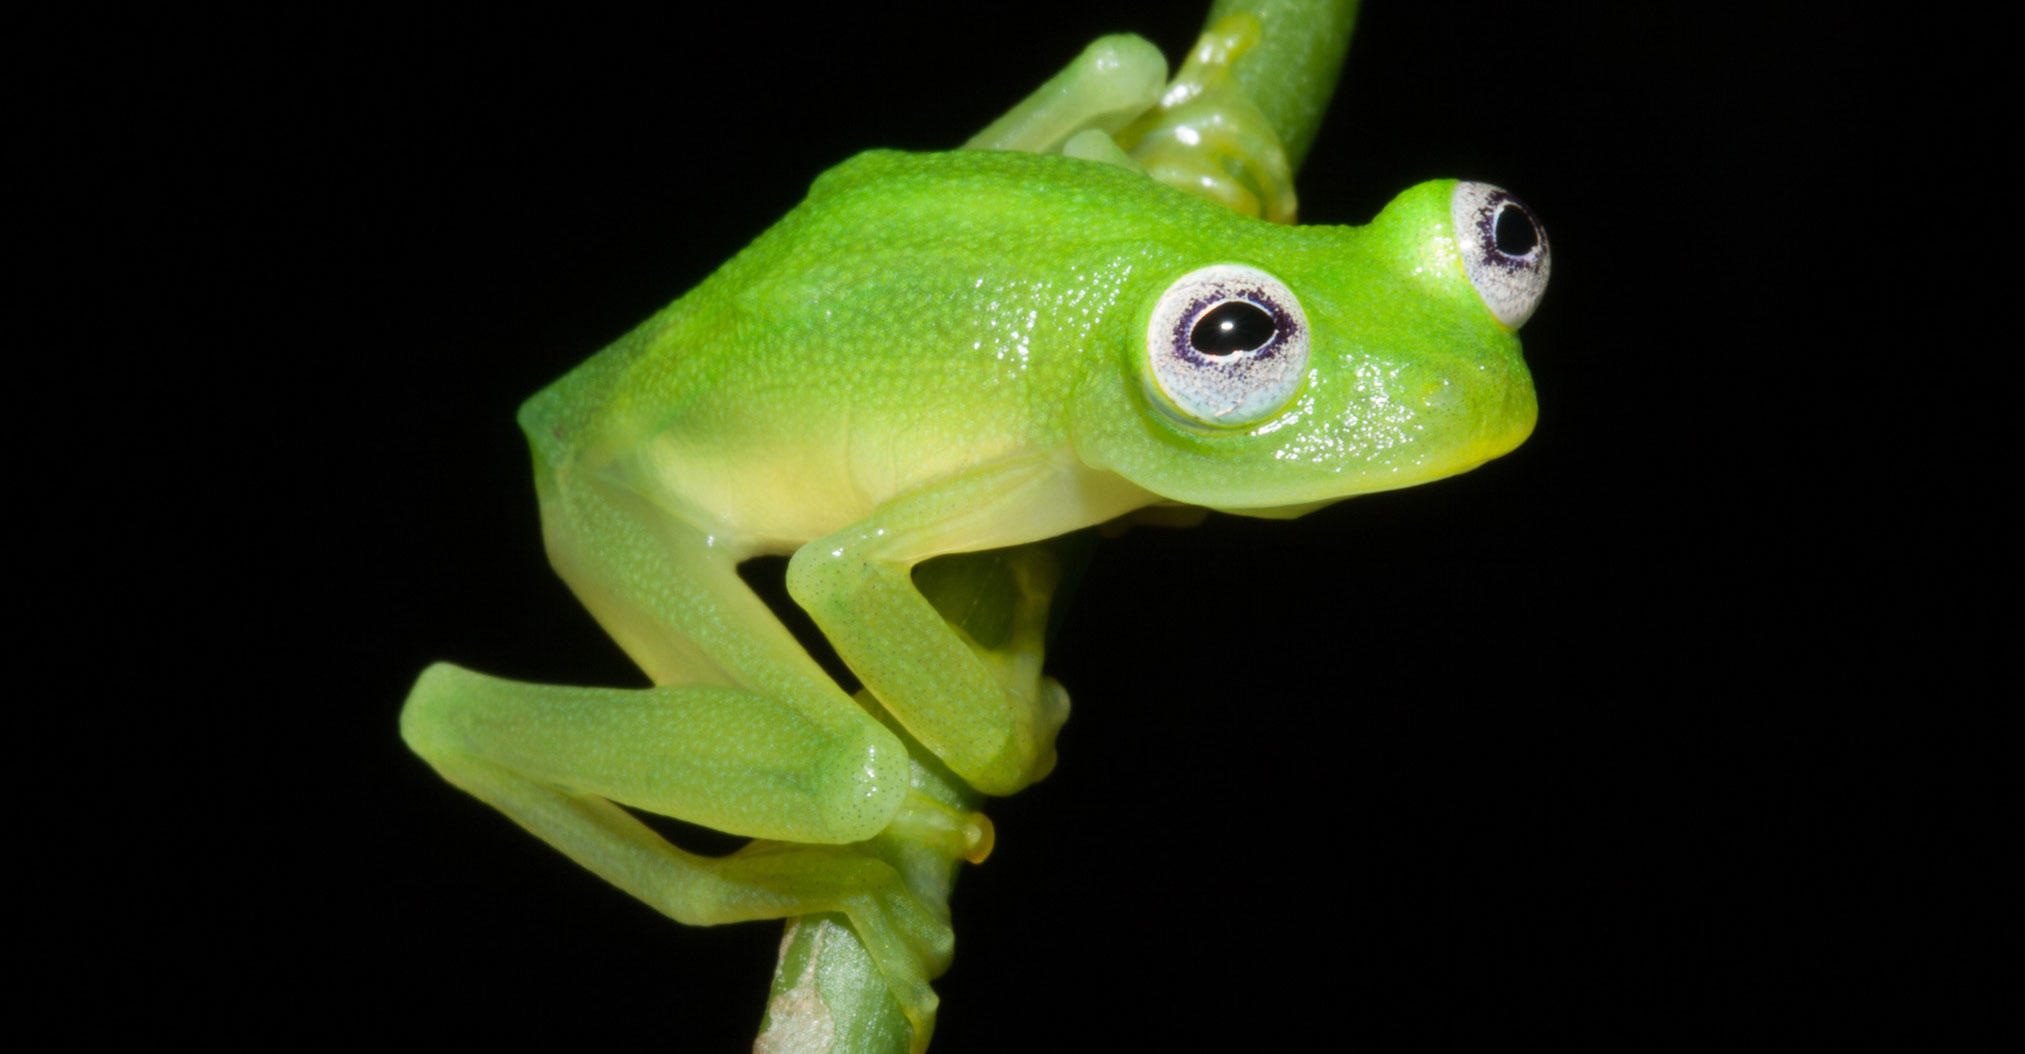 Kermit The Frog Stock Photos and Pictures